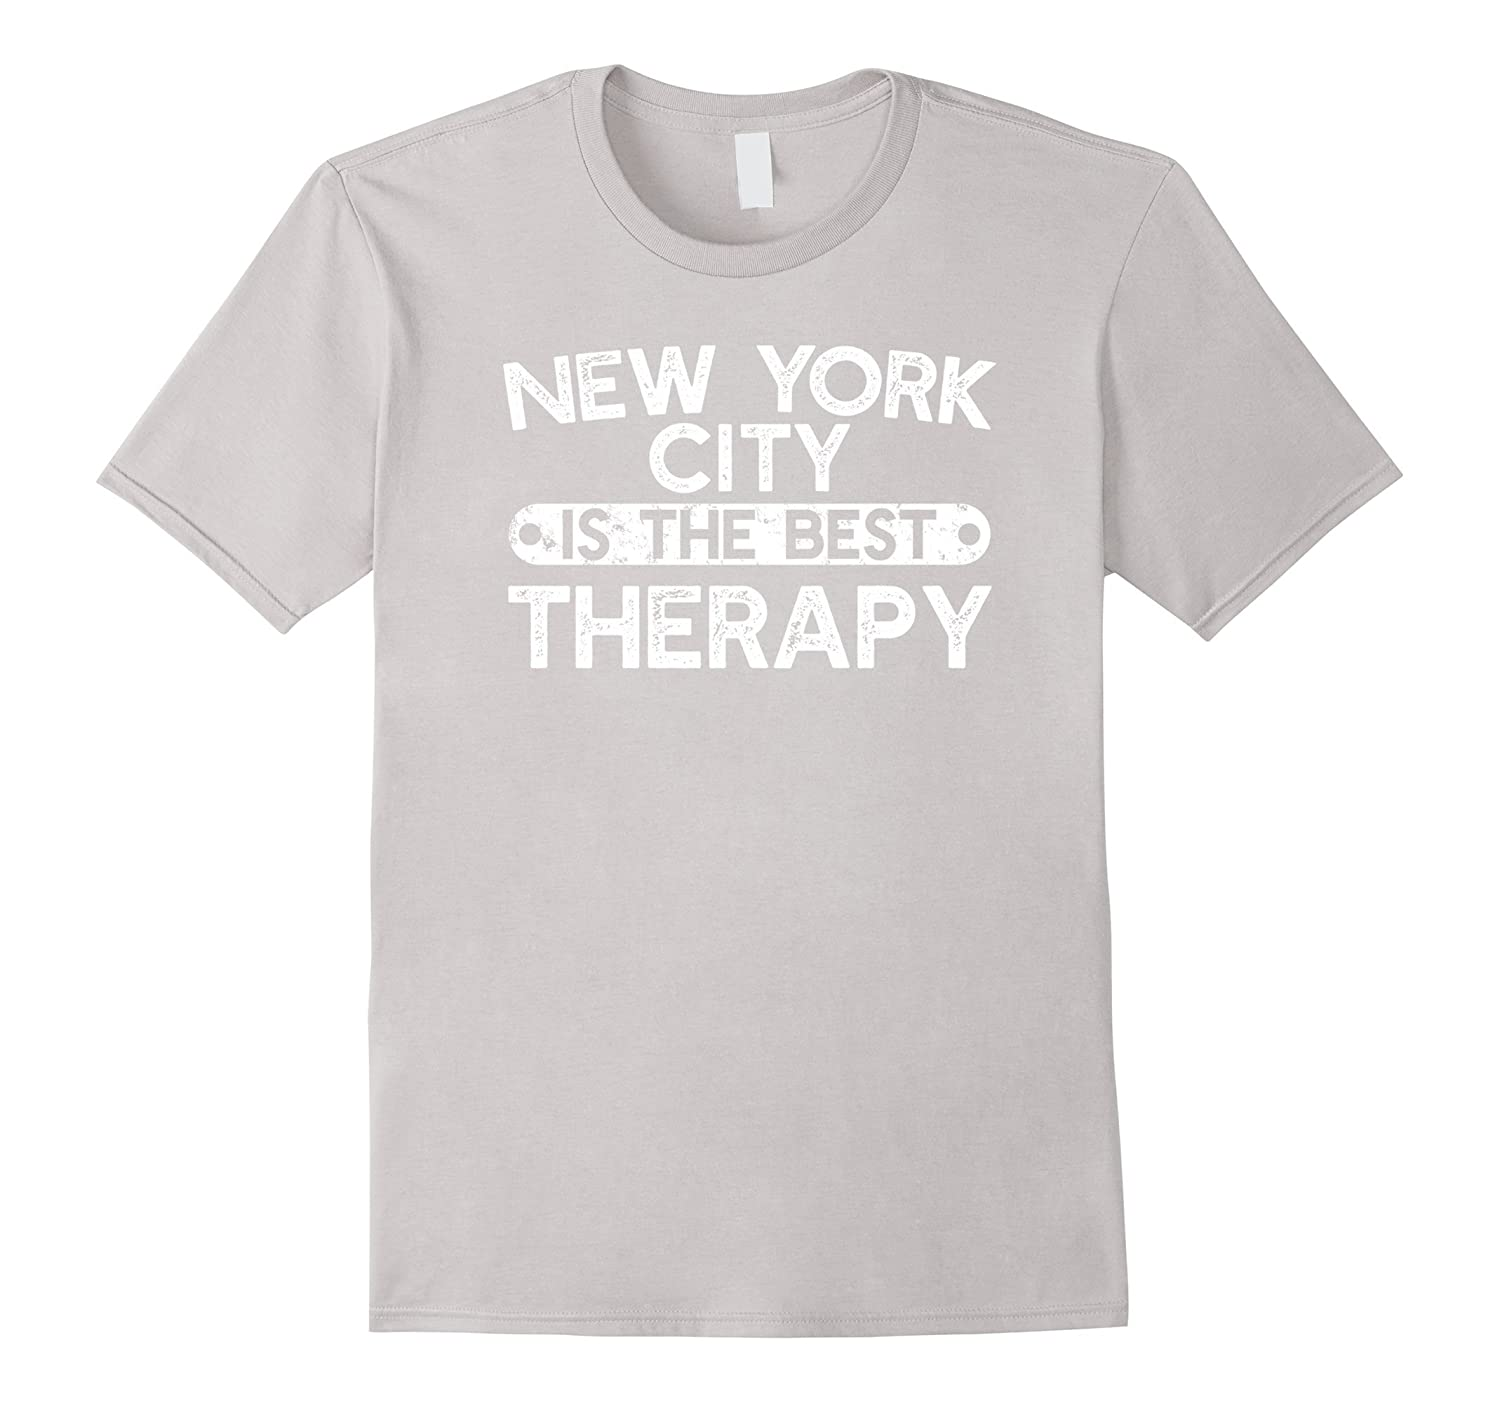 New York City Is The Best Therapy – Funny NYC Saying T-shirt-CL ... d5dea4d64a4